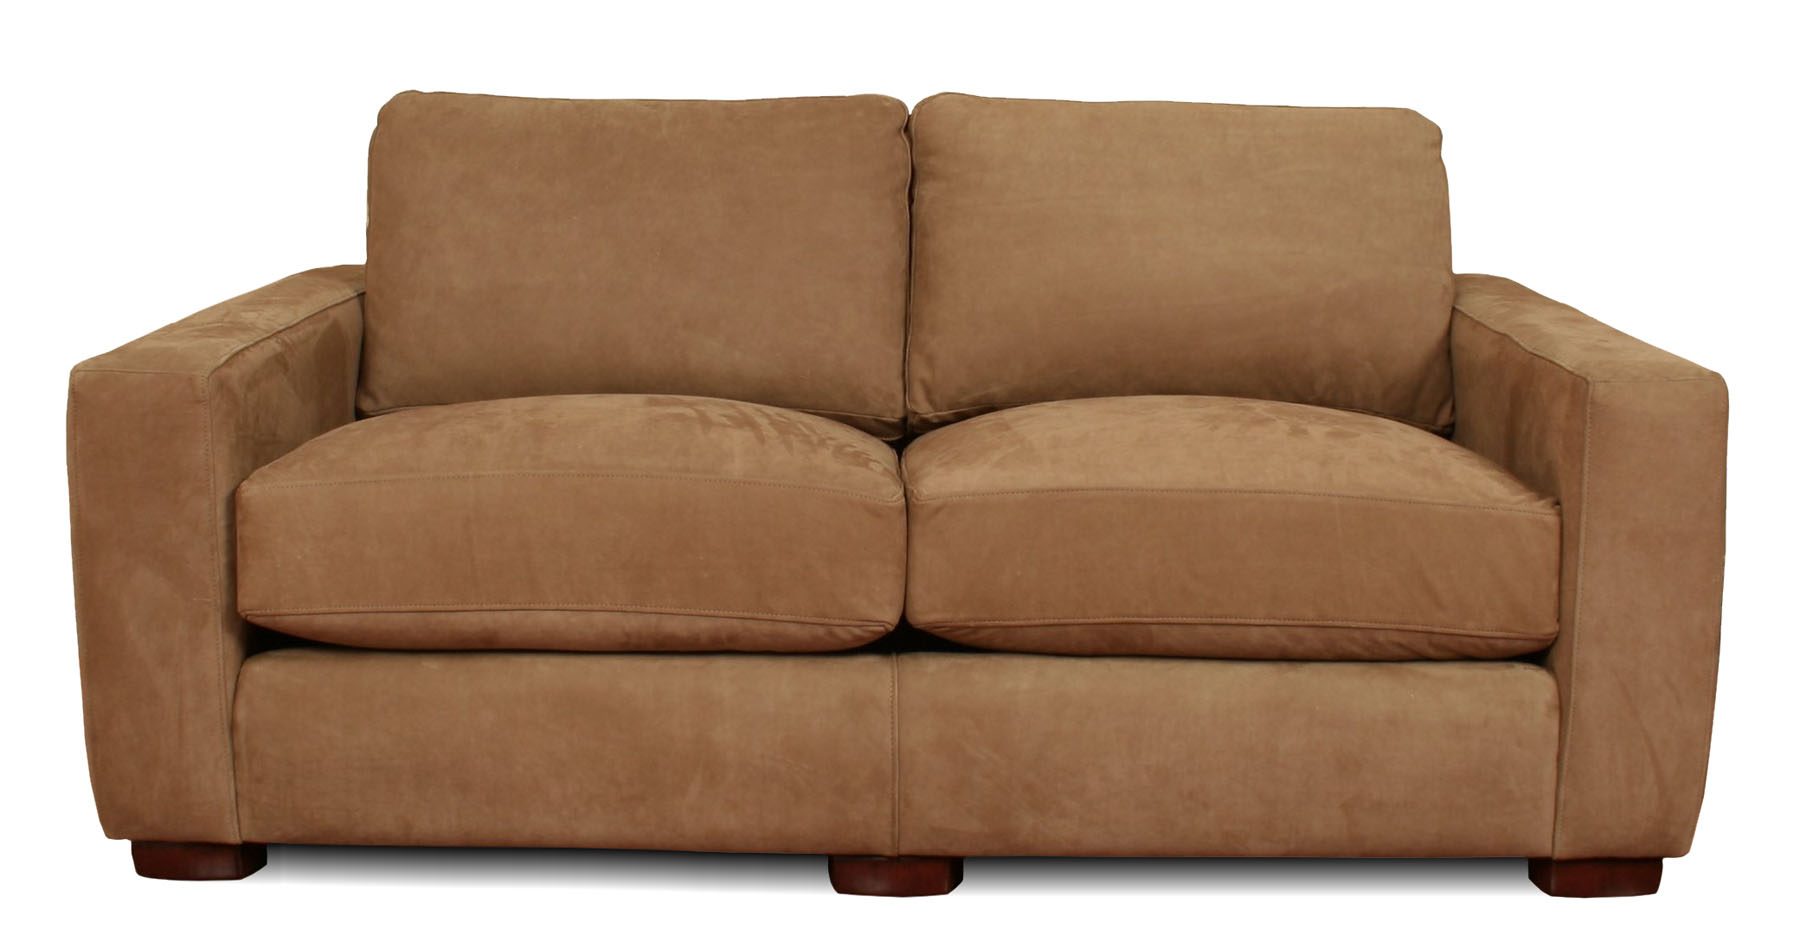 deep leather sectional sofa average size dimensions oakland  furniture